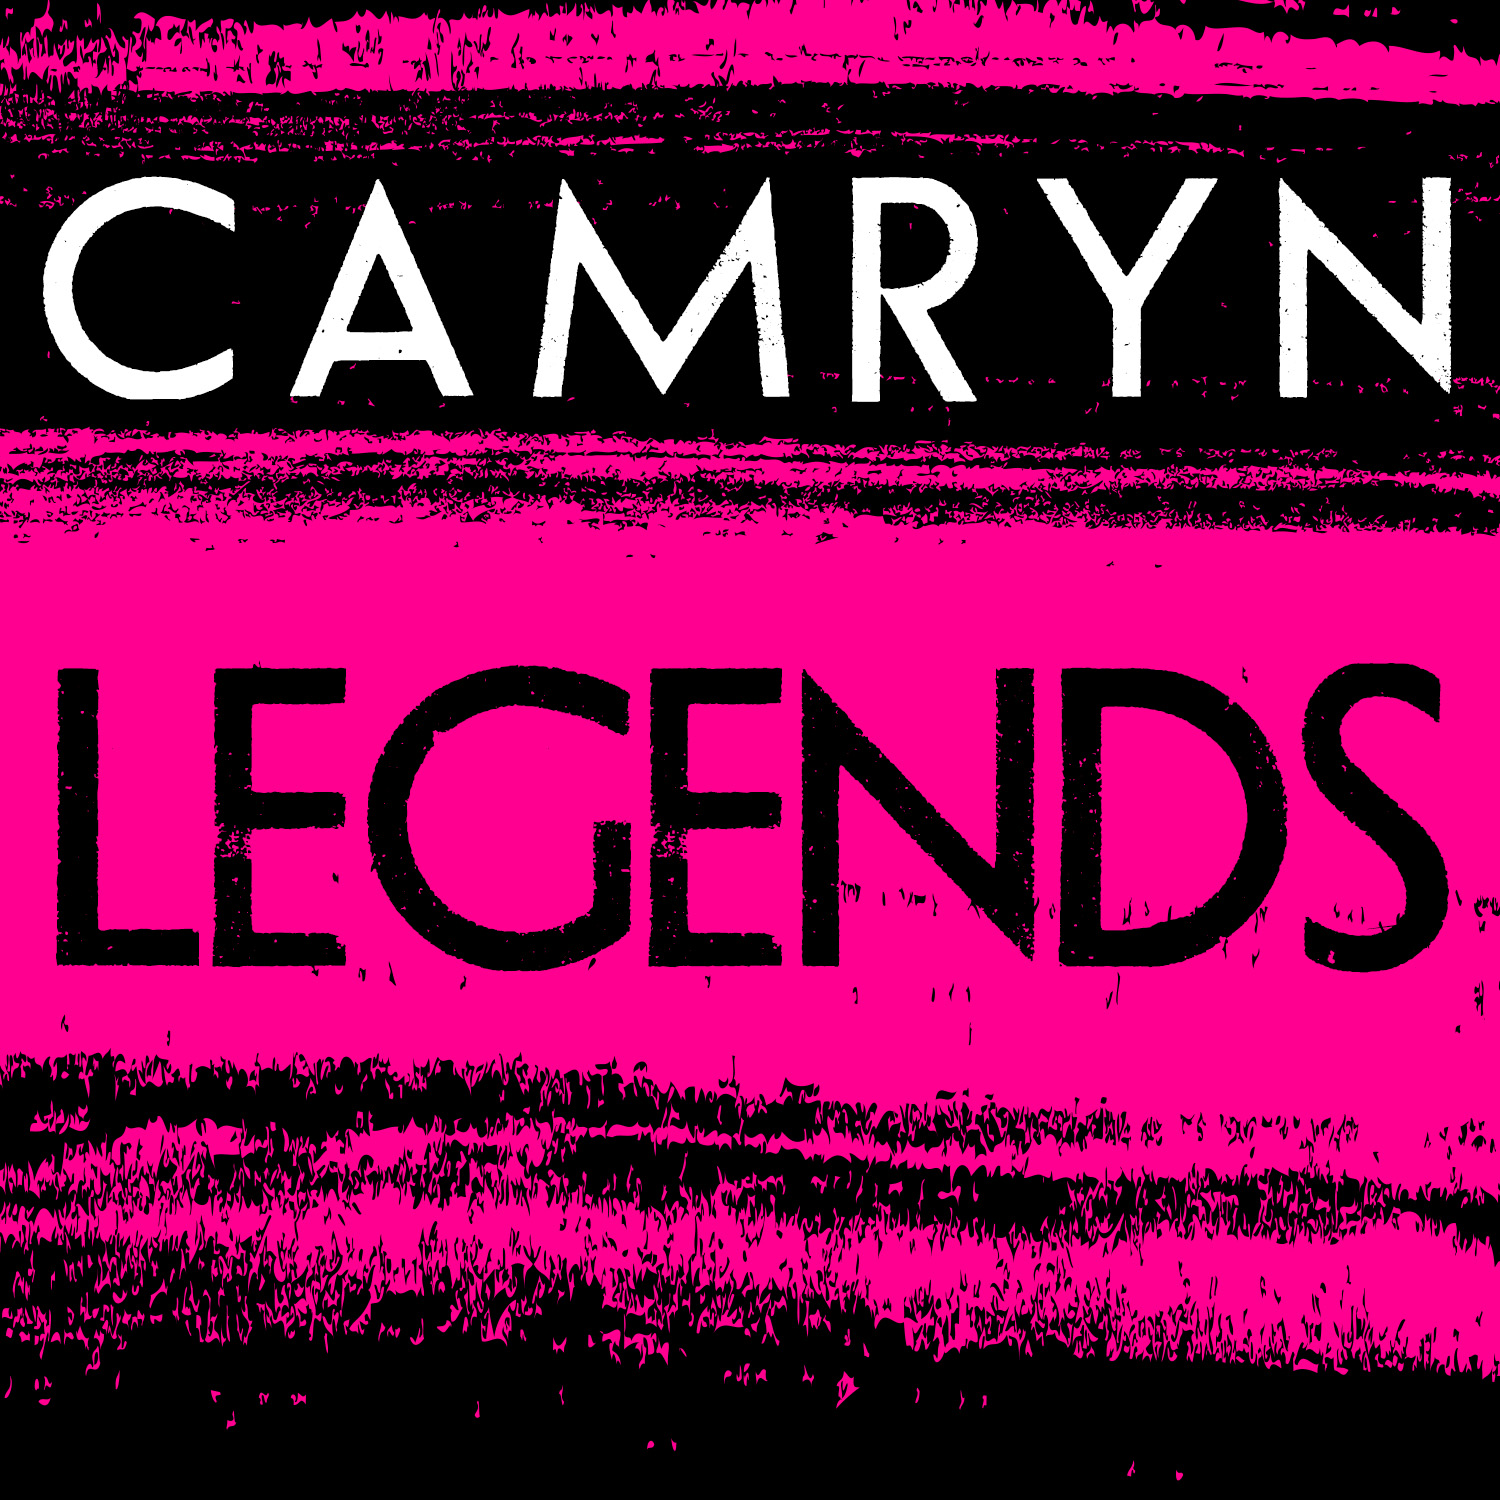 Camryn_Legends